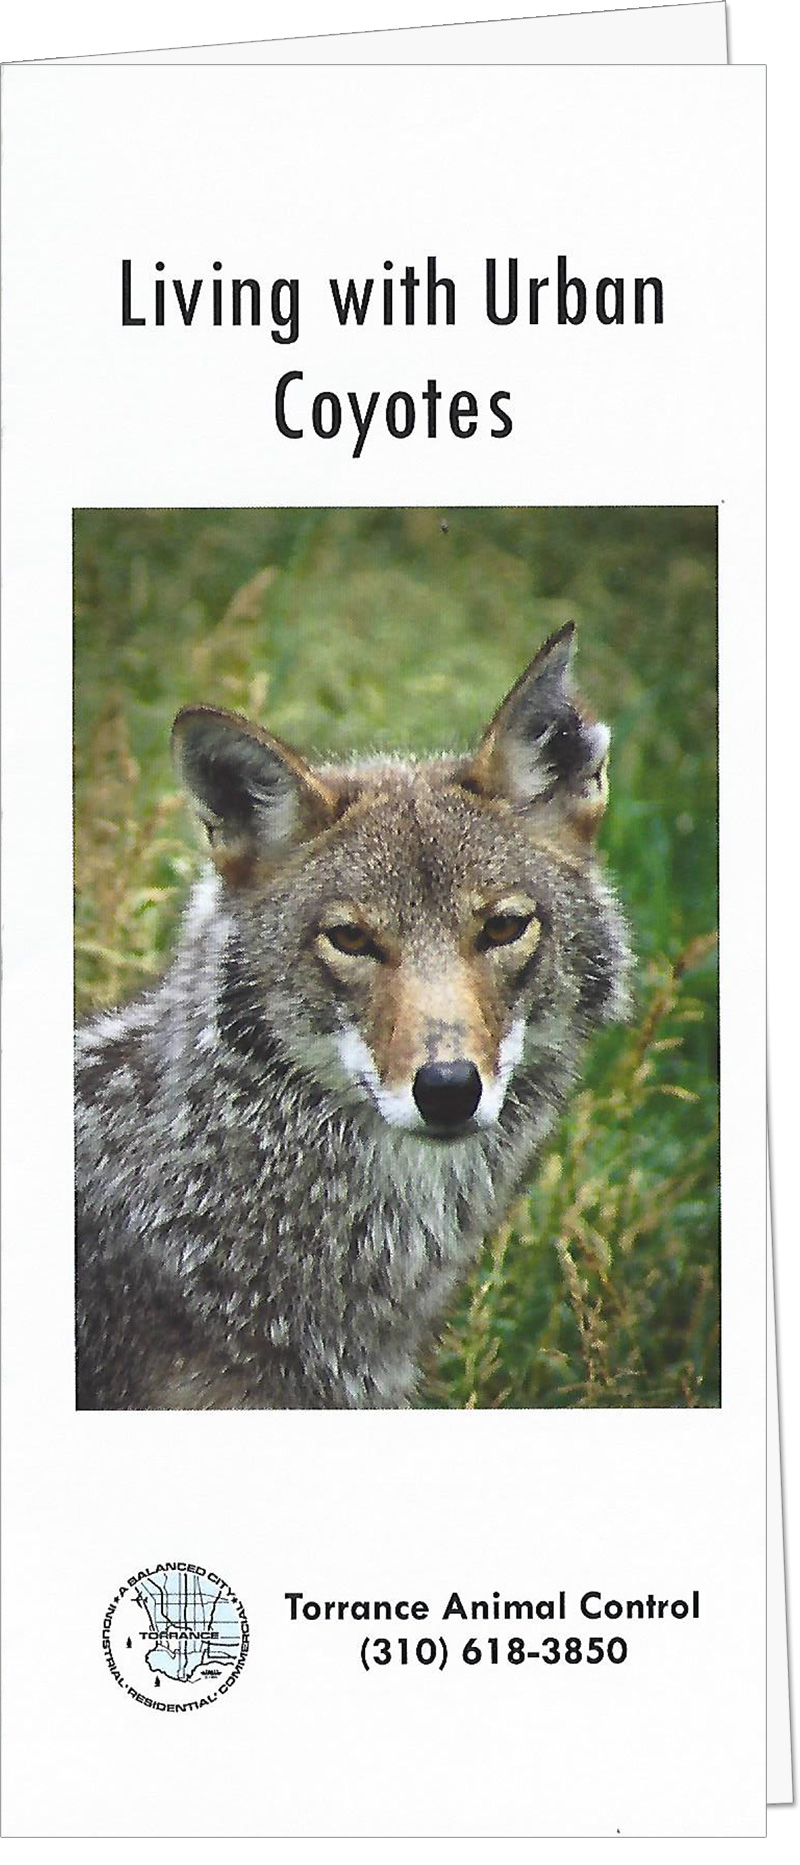 Urban Coyote Guide by Torrance Animal Control